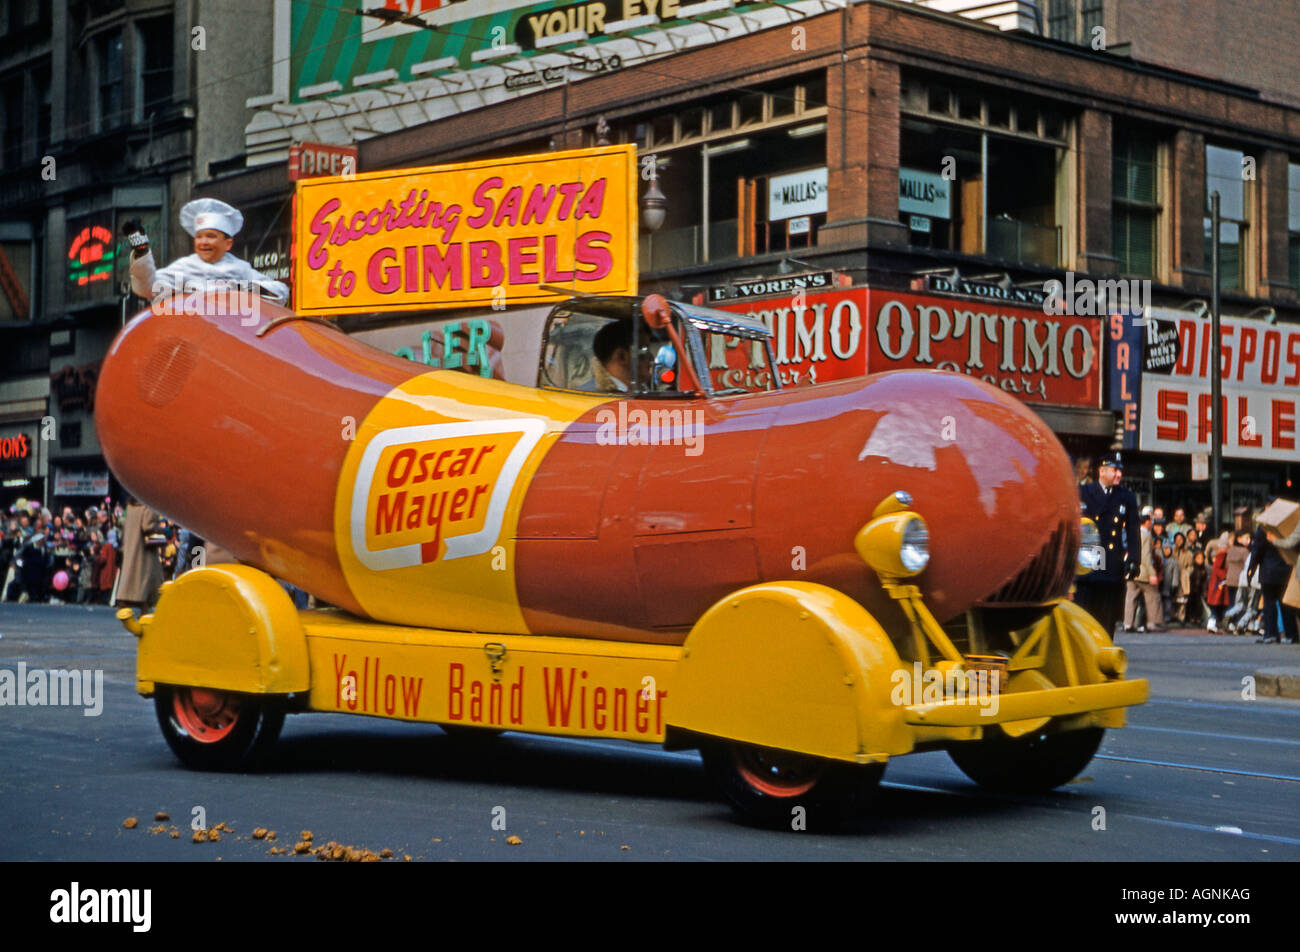 Stock Photo Hot Dog Car In Philadelphia Thanksgiving Day Parade Usa 1951 14253351 moreover RssFeed likewise War Face besides Catchy Hot Dog Slogans And Great Taglines as well 223868. on oscar mayer slogan